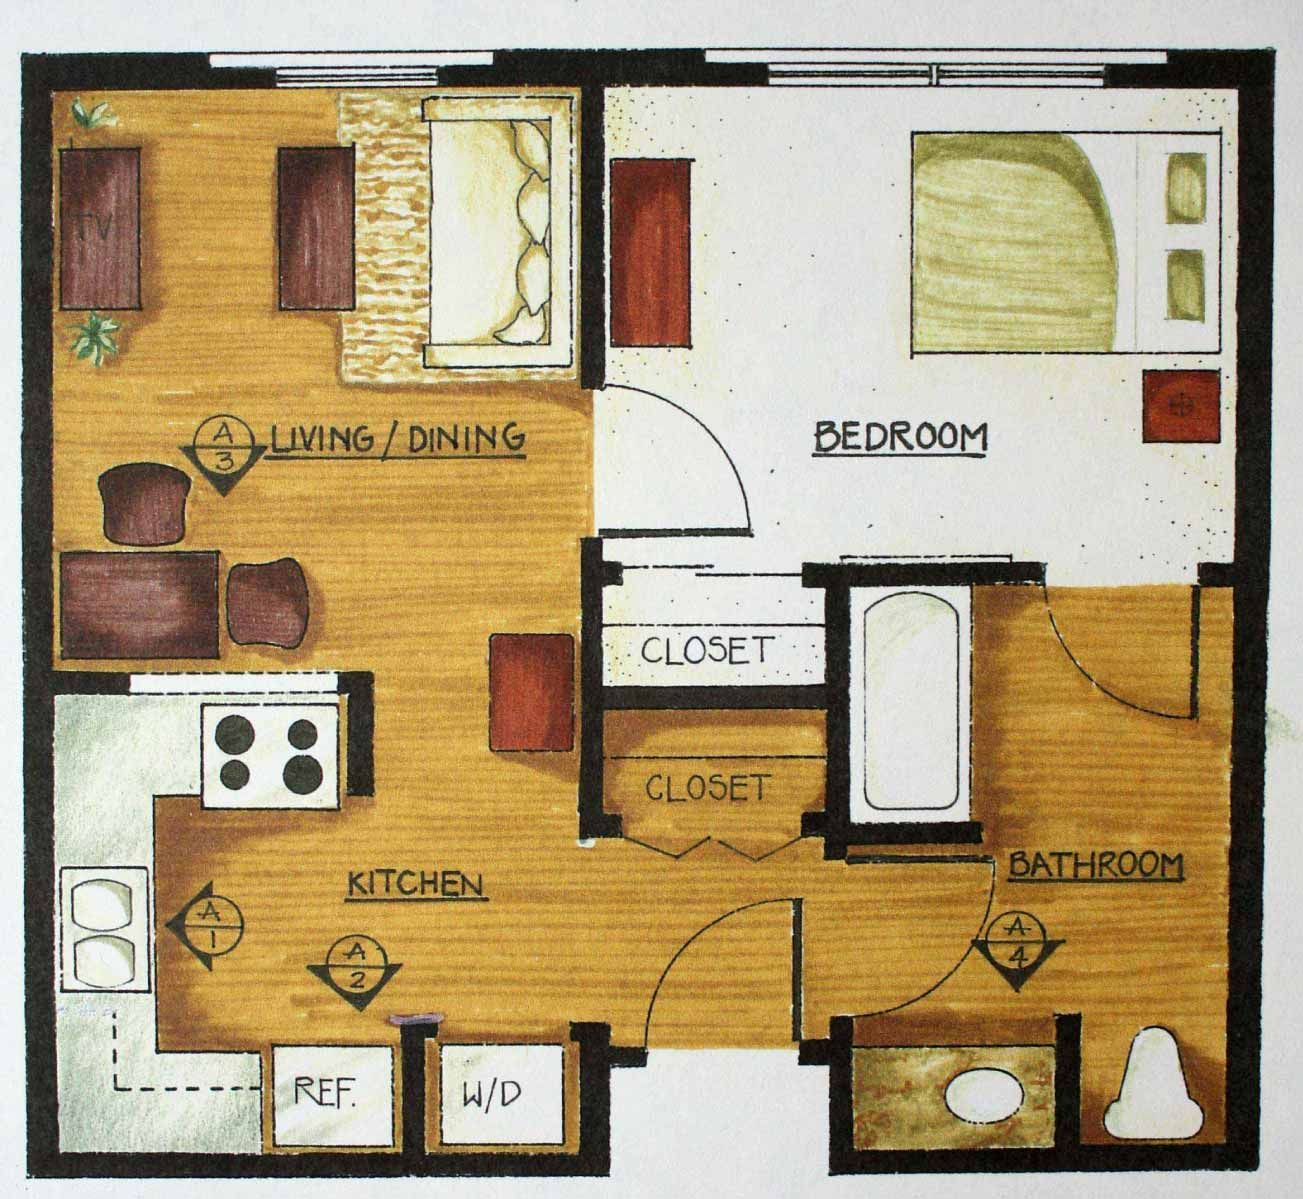 simple floor plan nice for mother in law has 2 closets